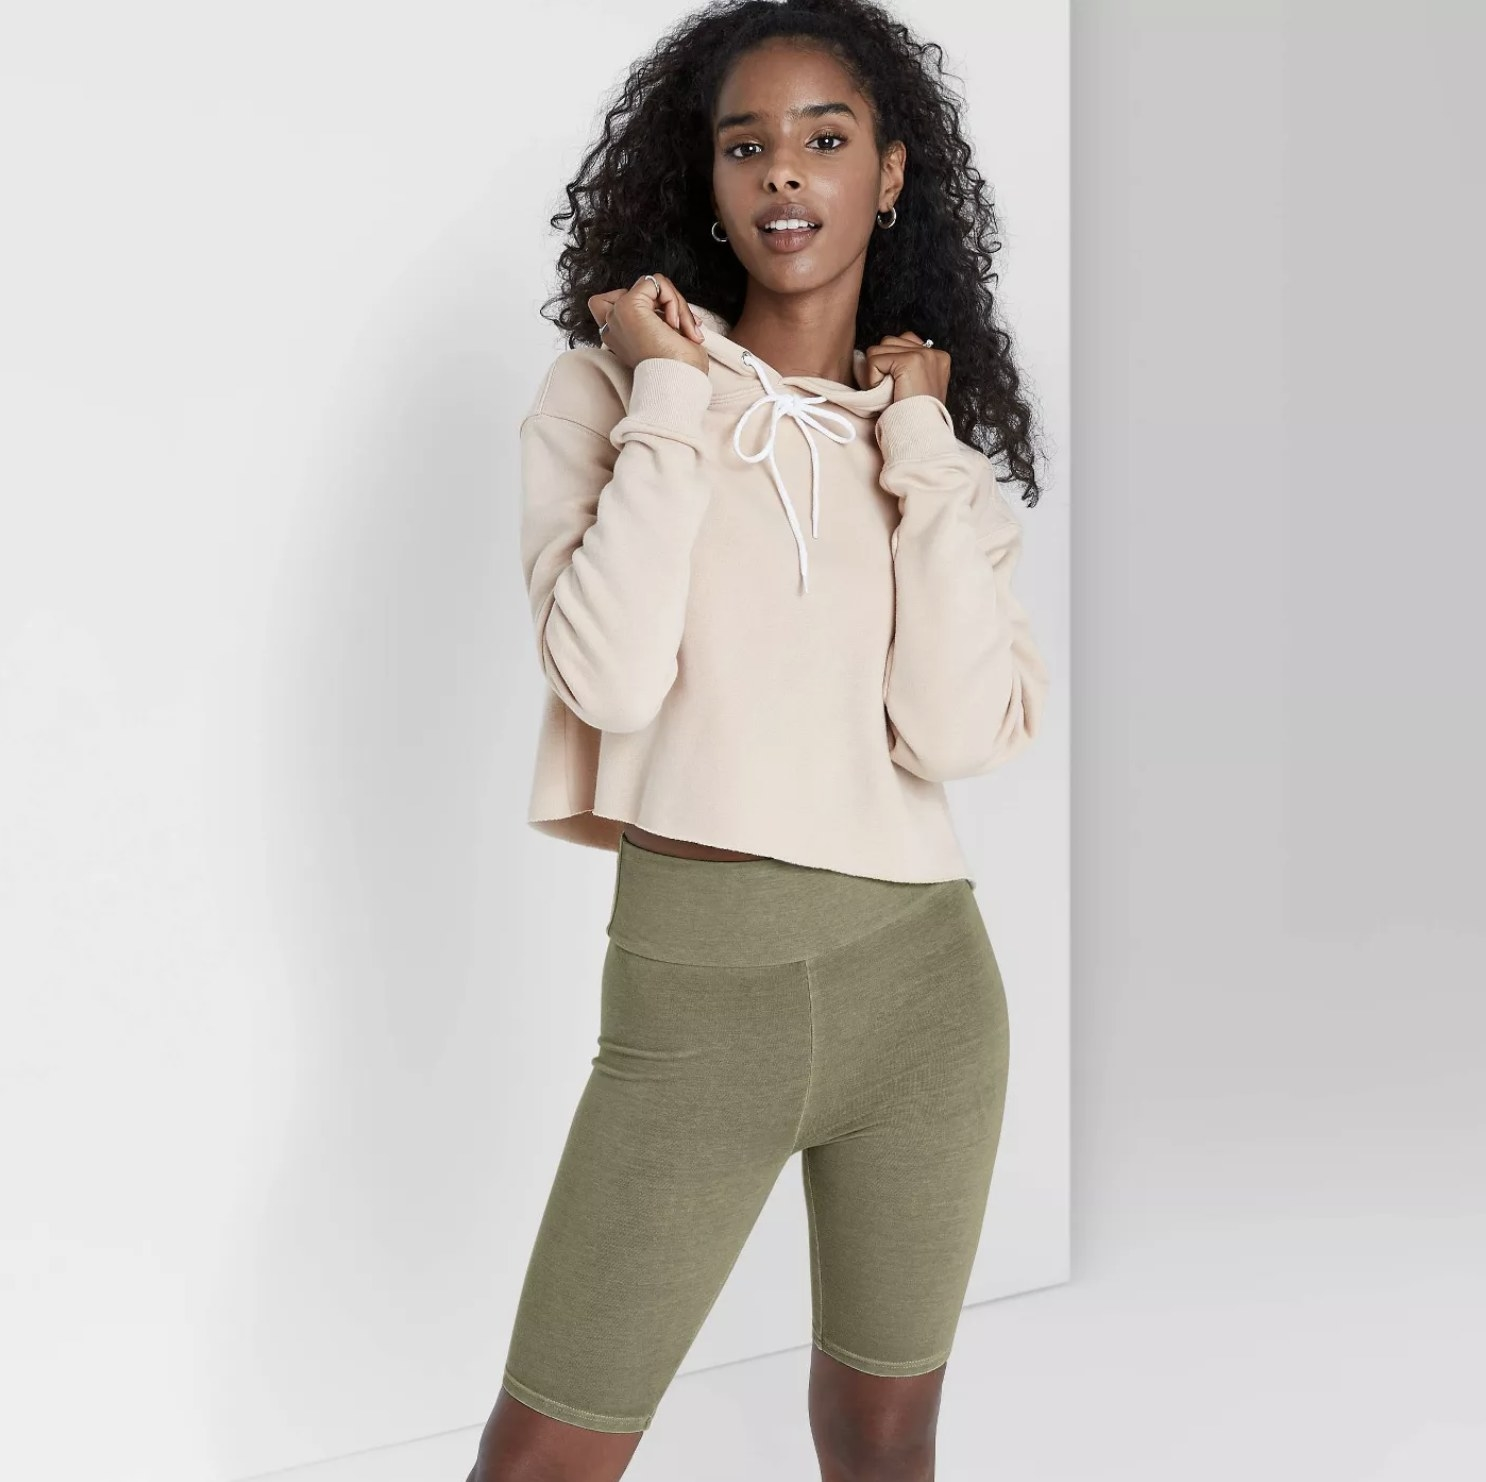 Model is wearing olive green biker shorts with a cream cropped hoodie